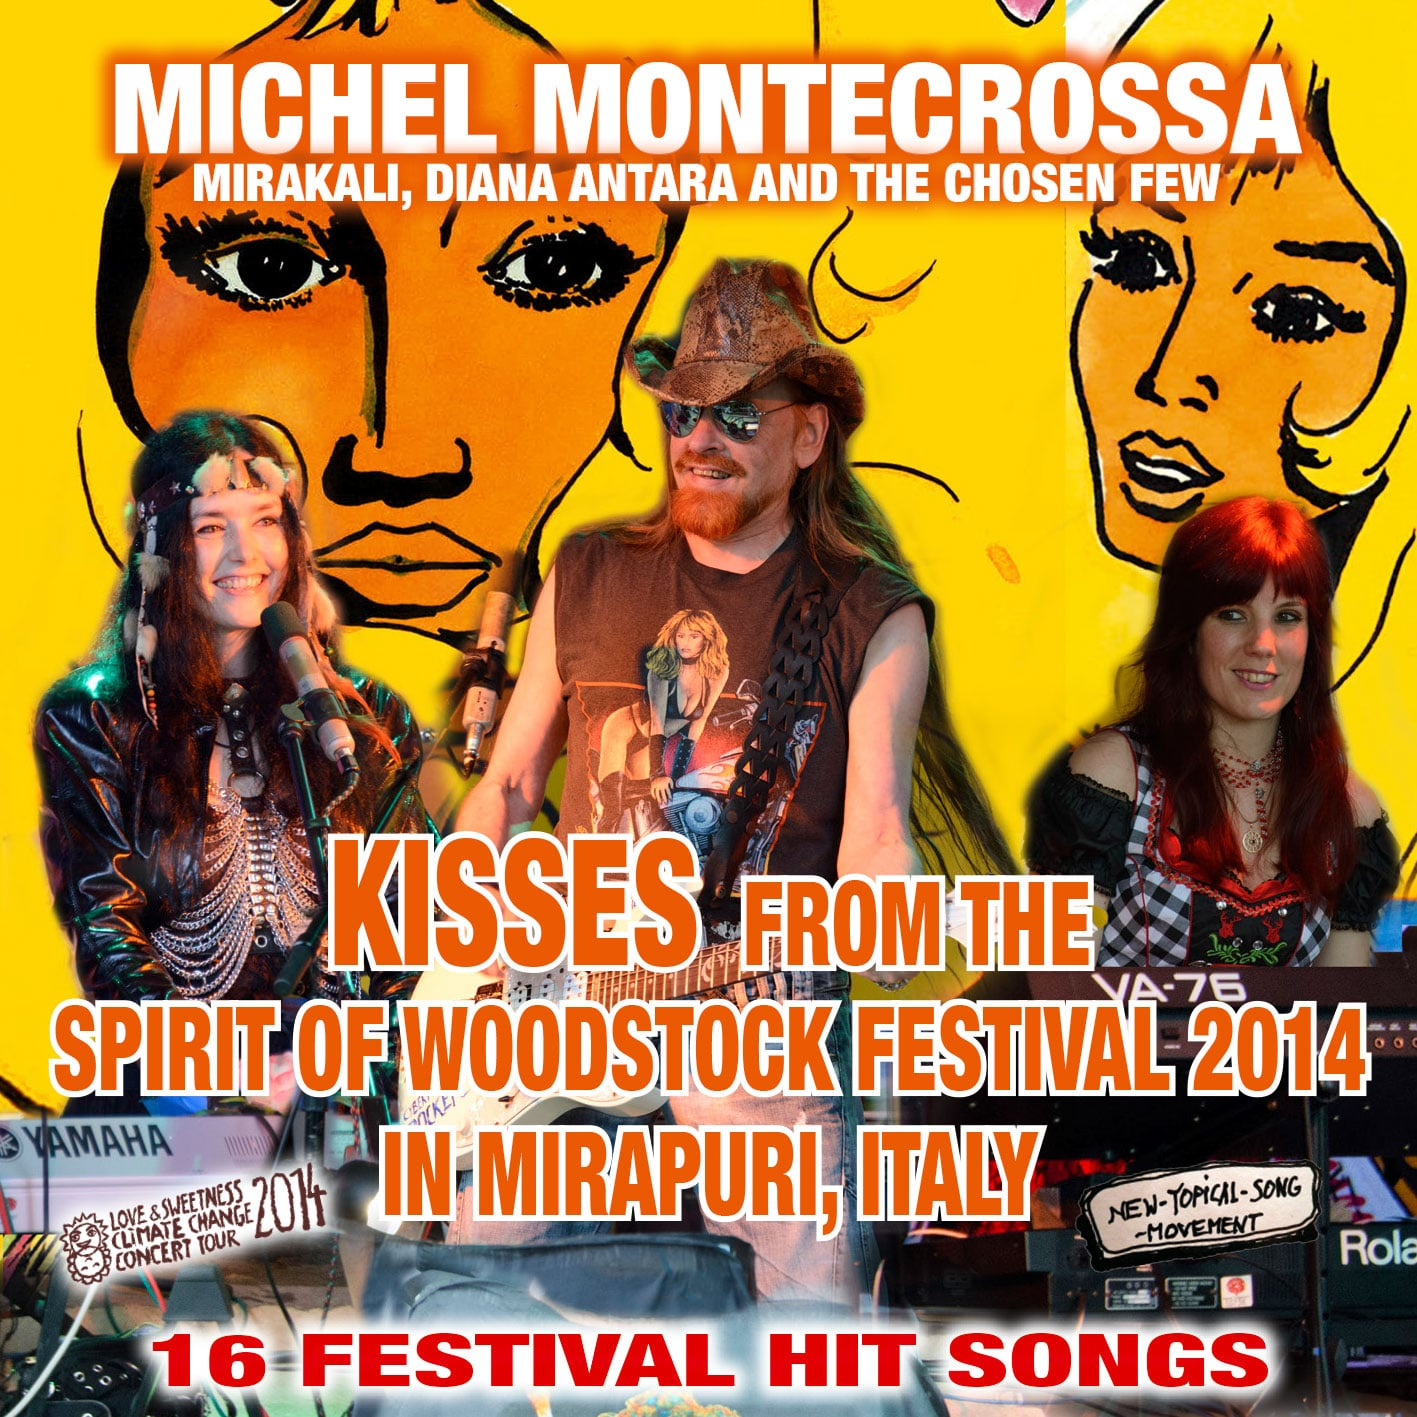 Kisses from the Spirit of Woodstock Festival 2014 in Mirapuri, Italy